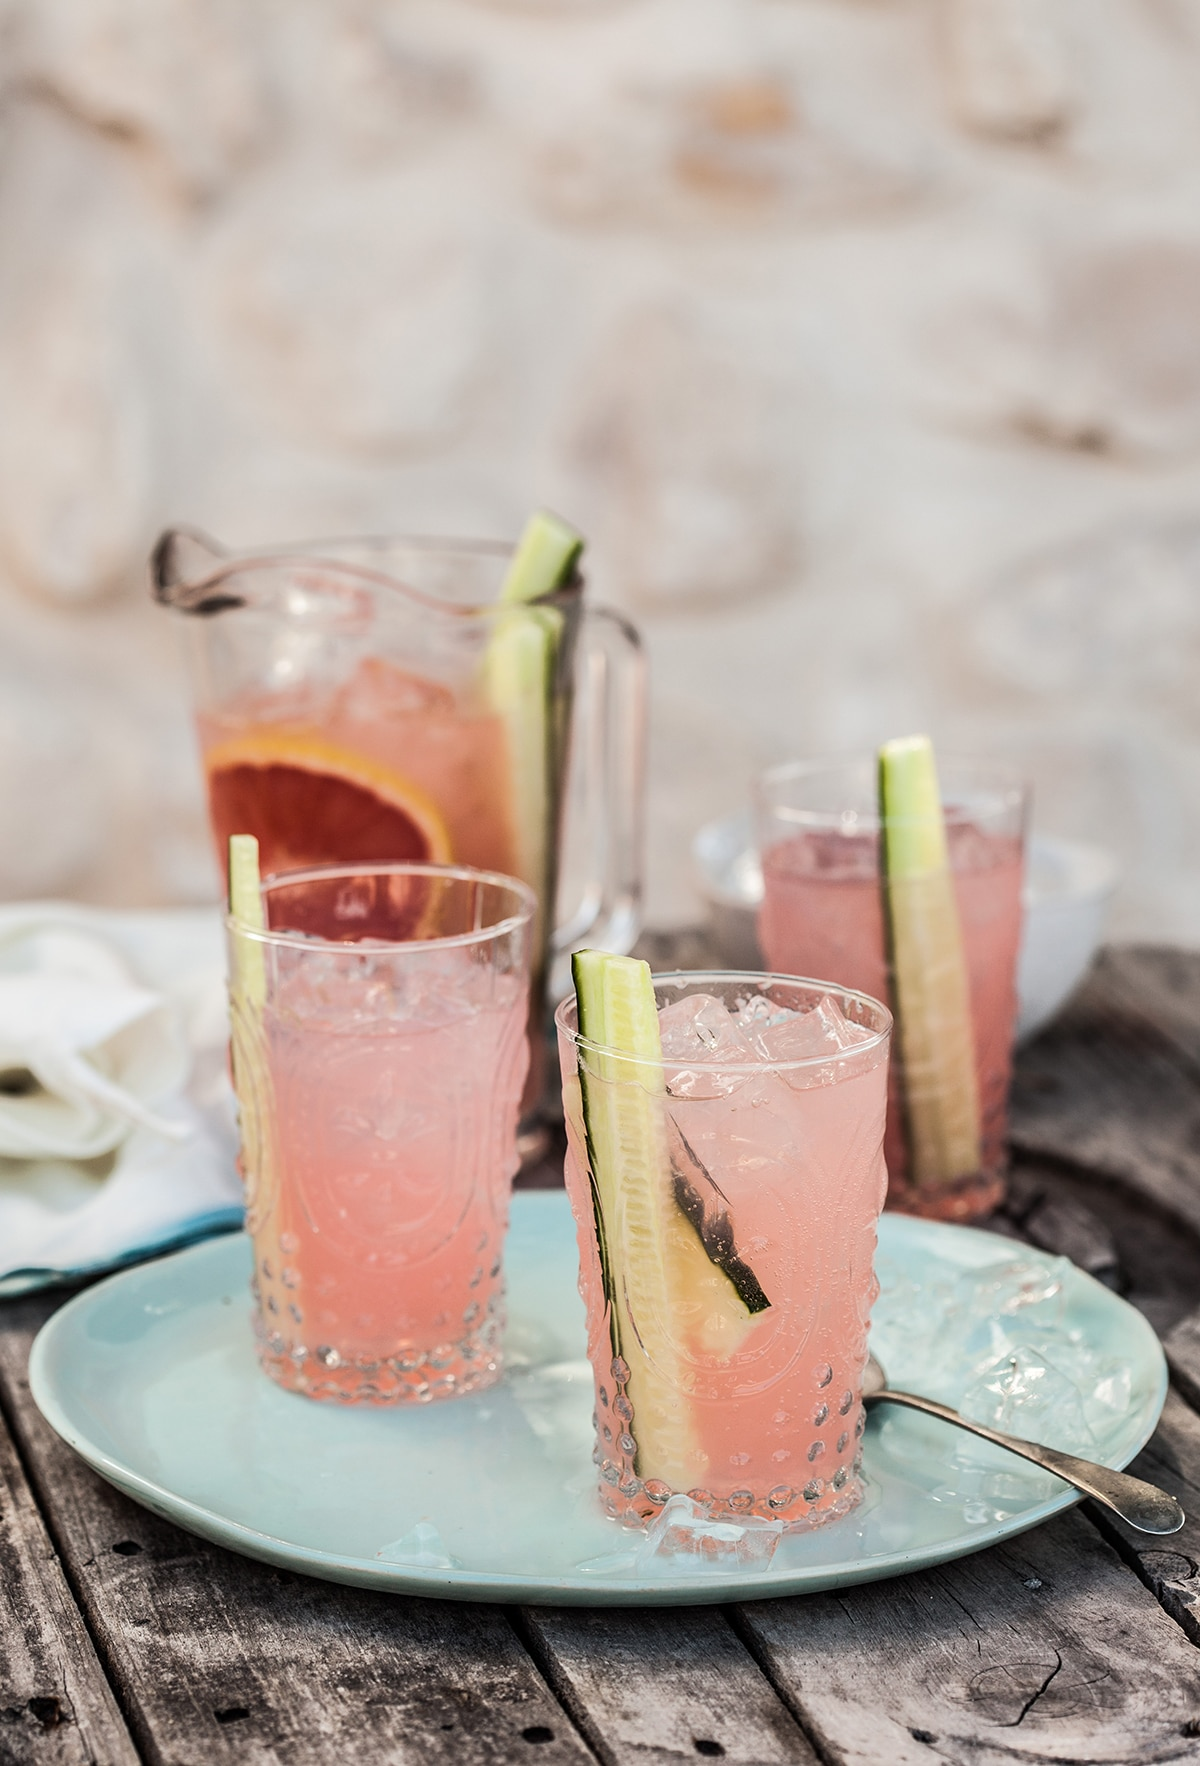 Cucumber gin and grapefruit spritzer recipes sbs food cucumber infused gin and grapefruit spritzer httpssbsfood recipescucumber infused gin and grapefruit spritzer forumfinder Image collections